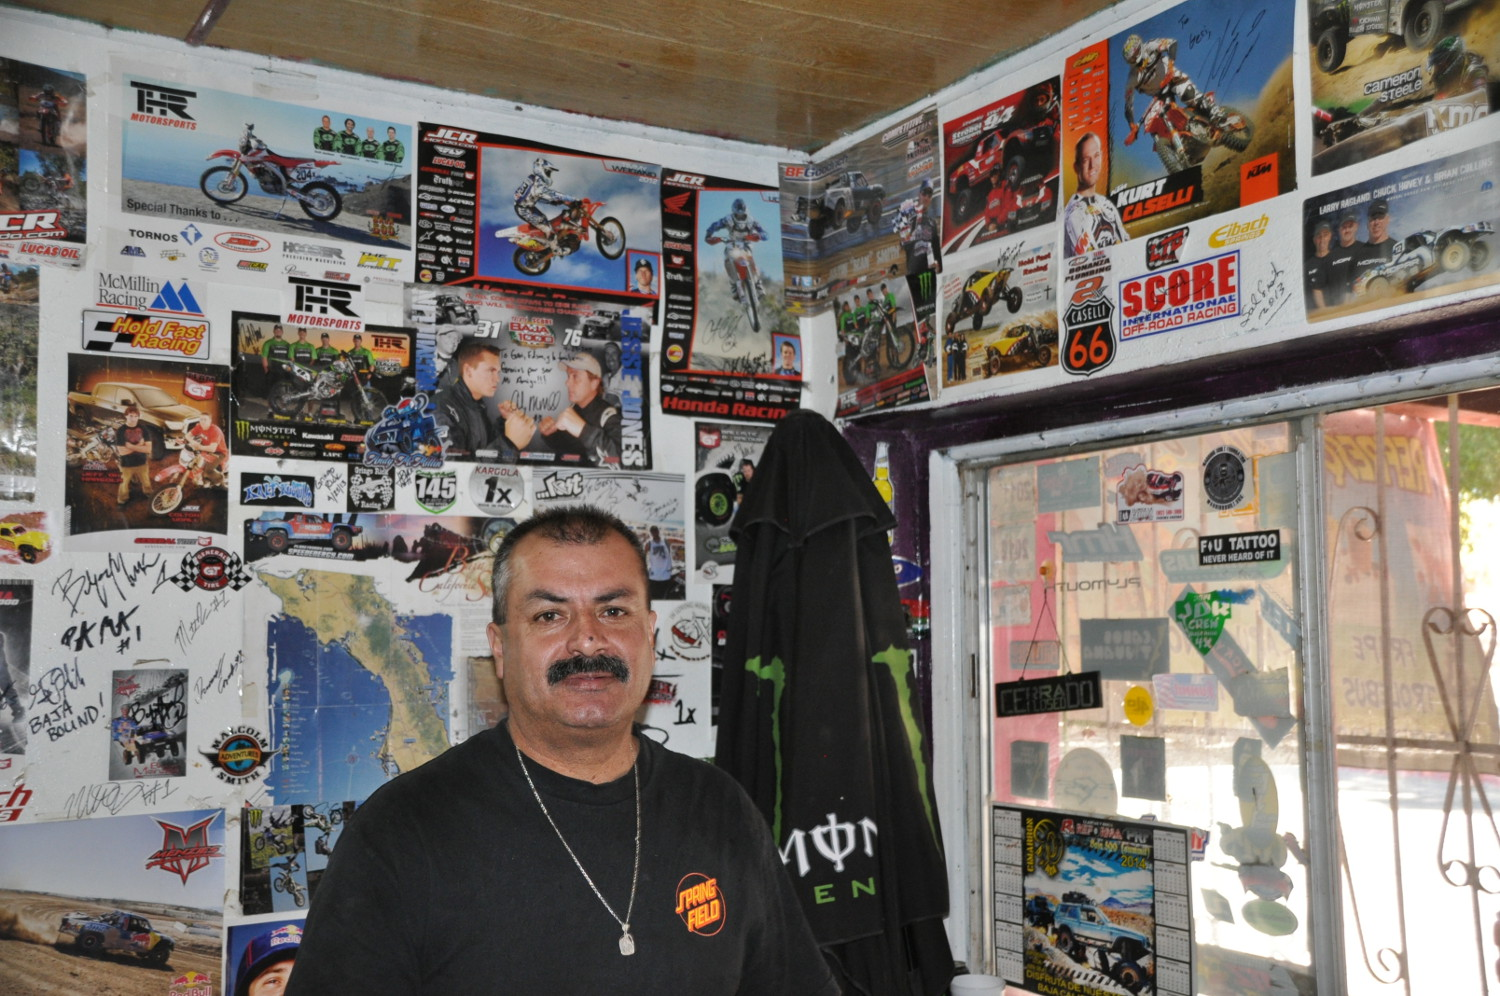 Unübersehbar: der örtliche Barbesitzer ist ein Fan der Rally Baja 1000 | You can't tell the owner of the local bar is a Baja 1000 rally fan!